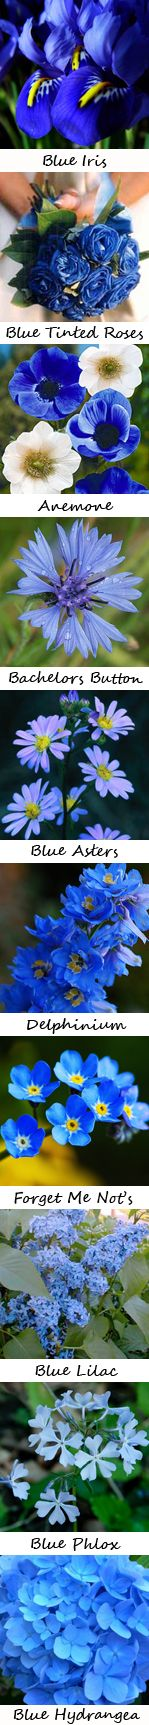 A guide to blue wedding flowers!  Best  guide ever!